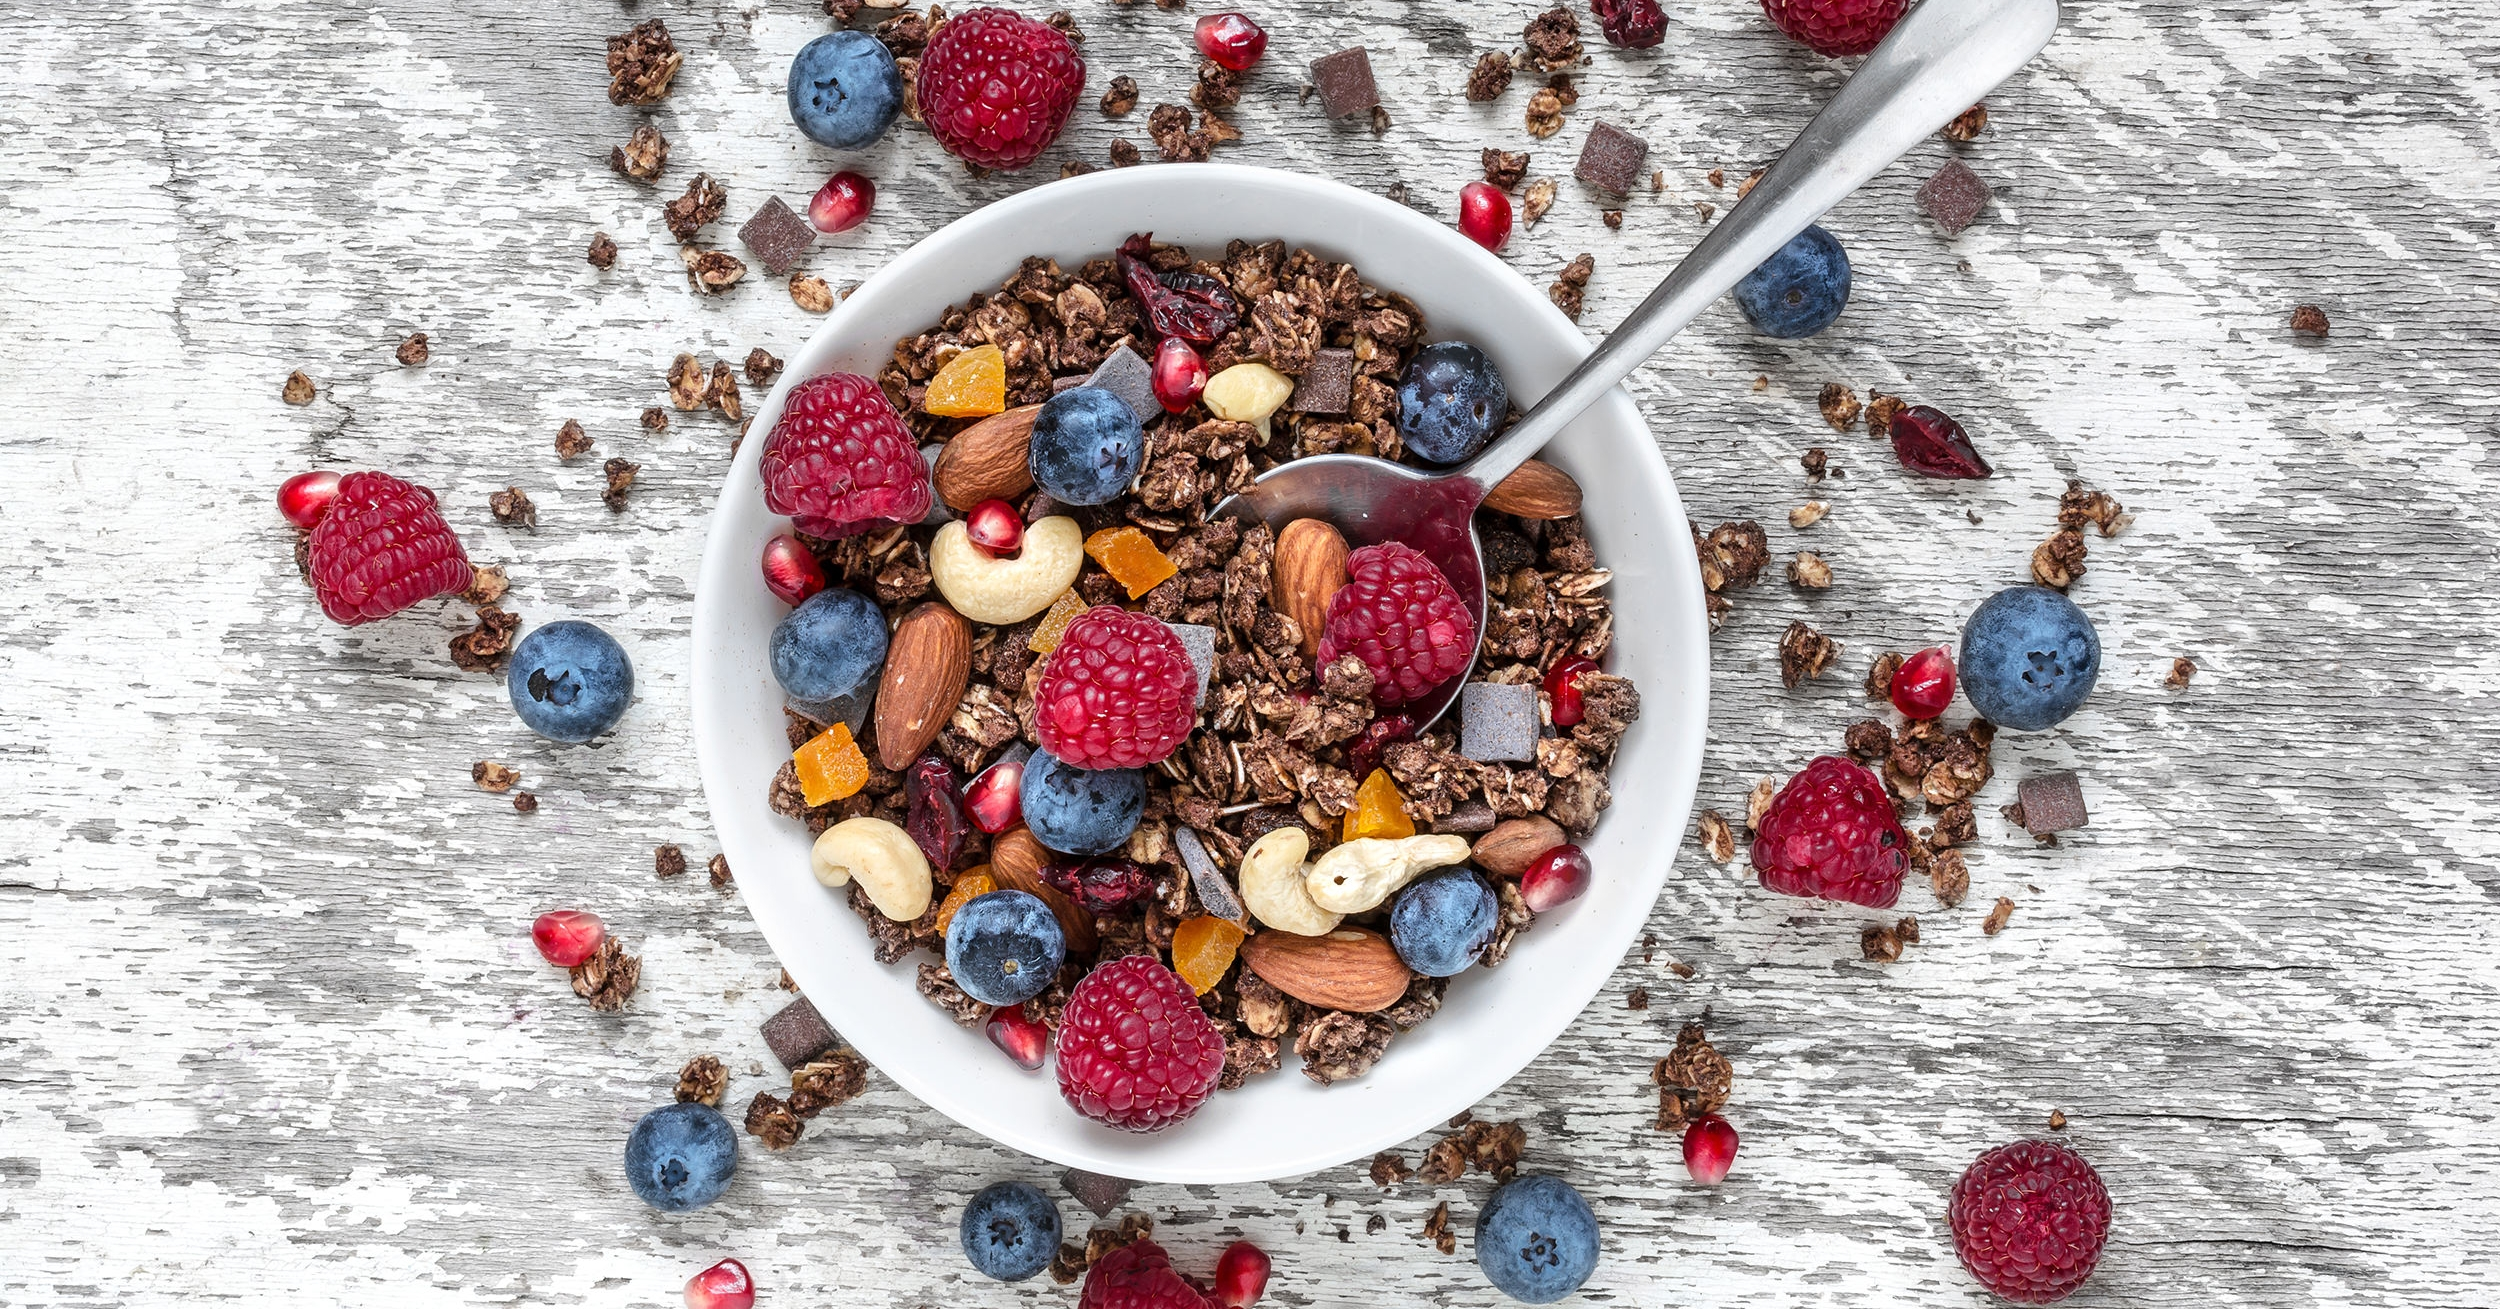 Plant-based breakfast granola and cereal, healthy vegan brunch food.